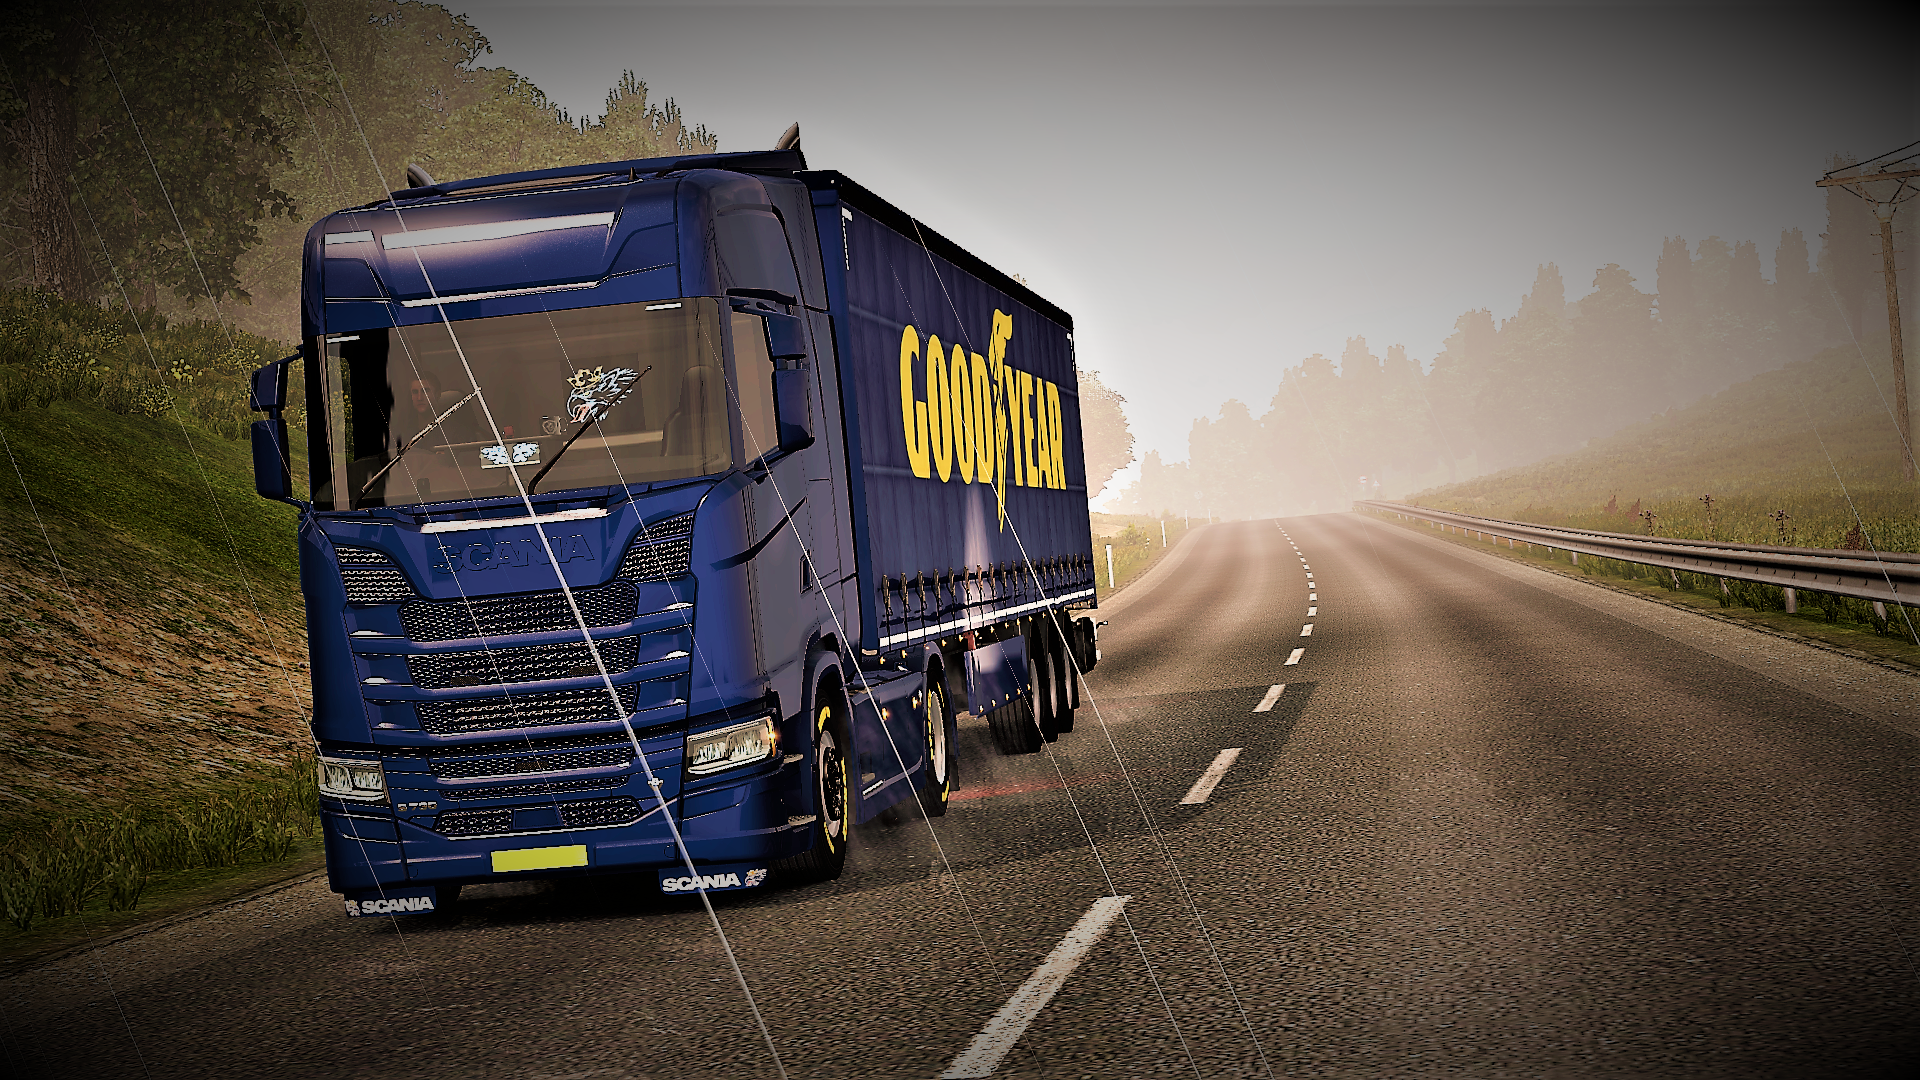 ets2_20190811_121554_00.png